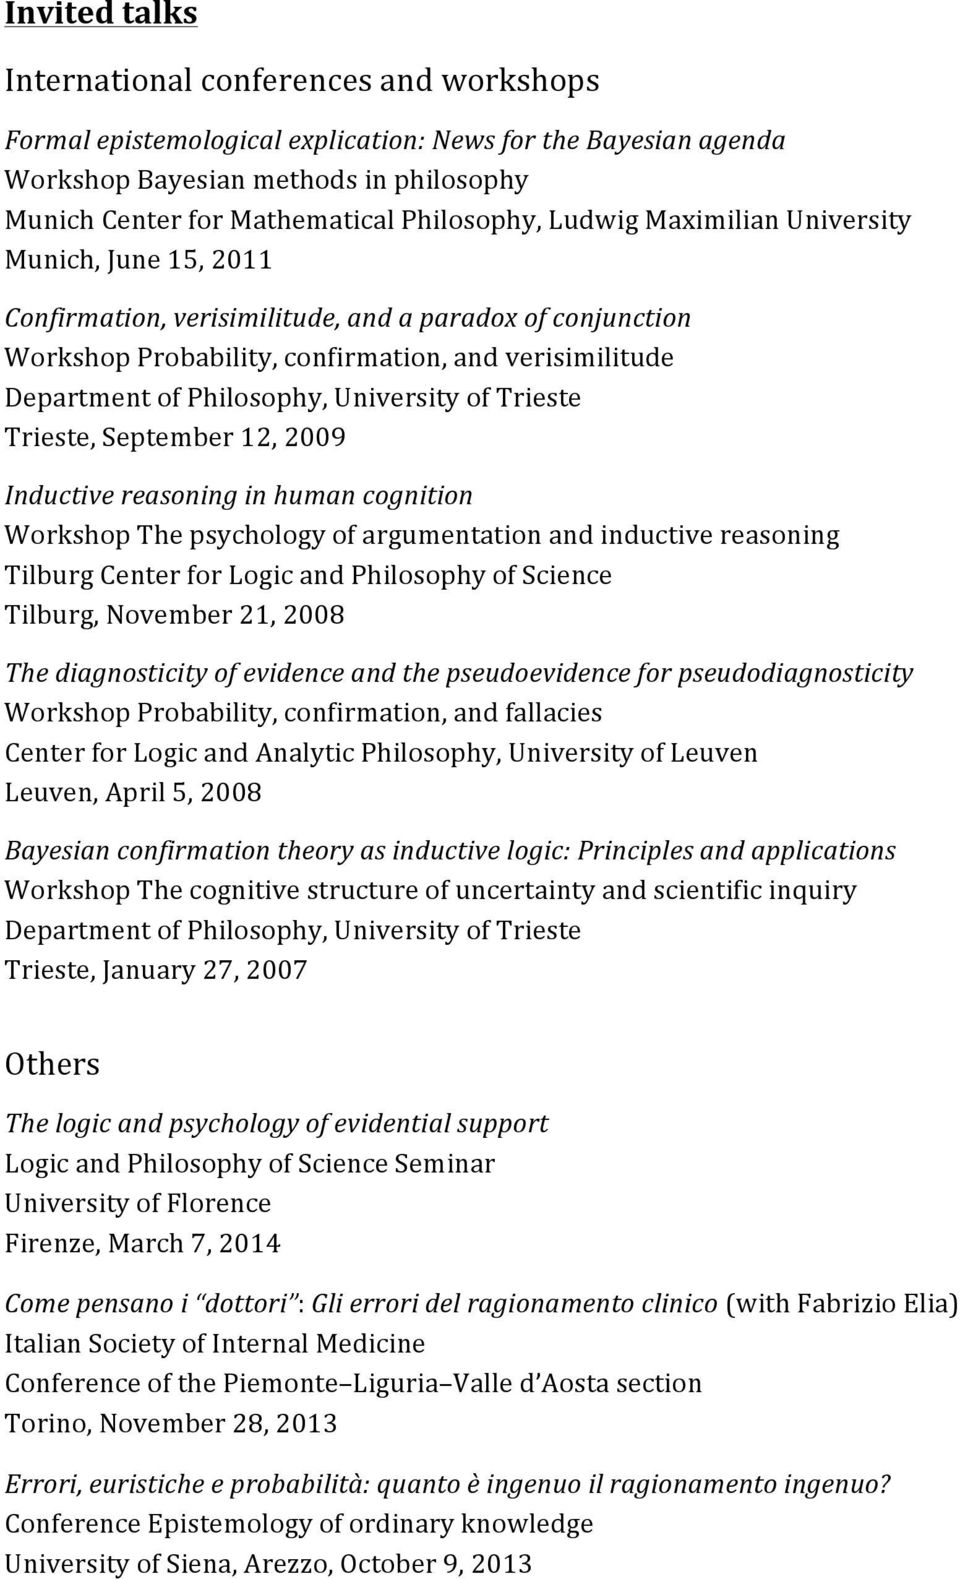 Philosophy, University of Trieste Trieste, September 12, 2009 Inductive reasoning in human cognition Workshop The psychology of argumentation and inductive reasoning Tilburg Center for Logic and